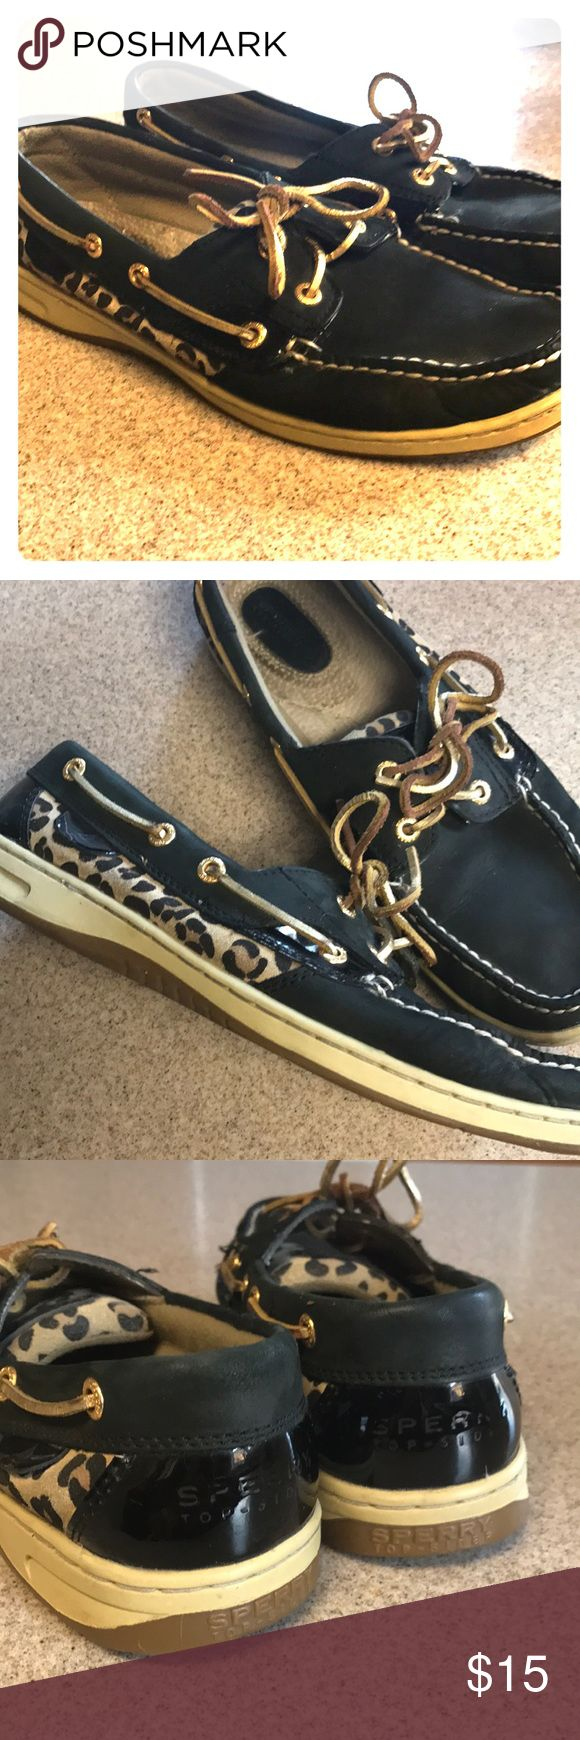 Black/Leopard Sperrys Who doesn't love leopard print?! These authentic leather upper Sperrys are the perfect boat shoe to add an extra bit of class to any outfit!!  Size 9.5 in good condition, lots of miles left in them! Sperry Shoes Flats & Loafers